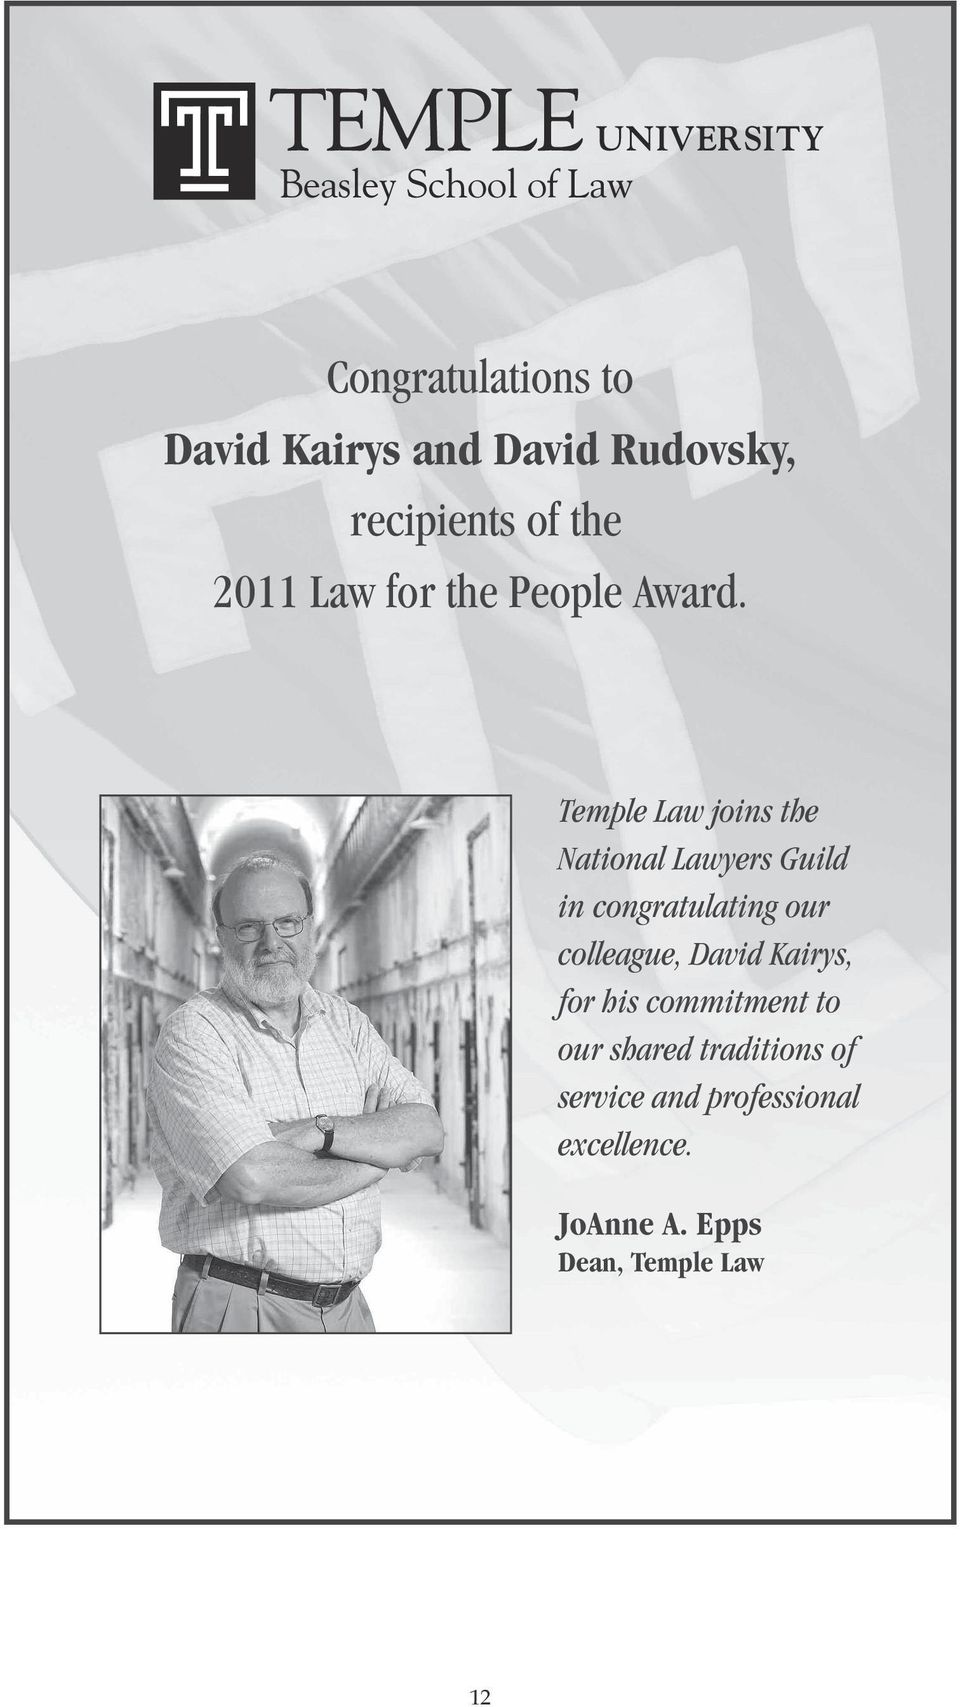 Temple Law joins the National Lawyers Guild in congratulating our colleague, David